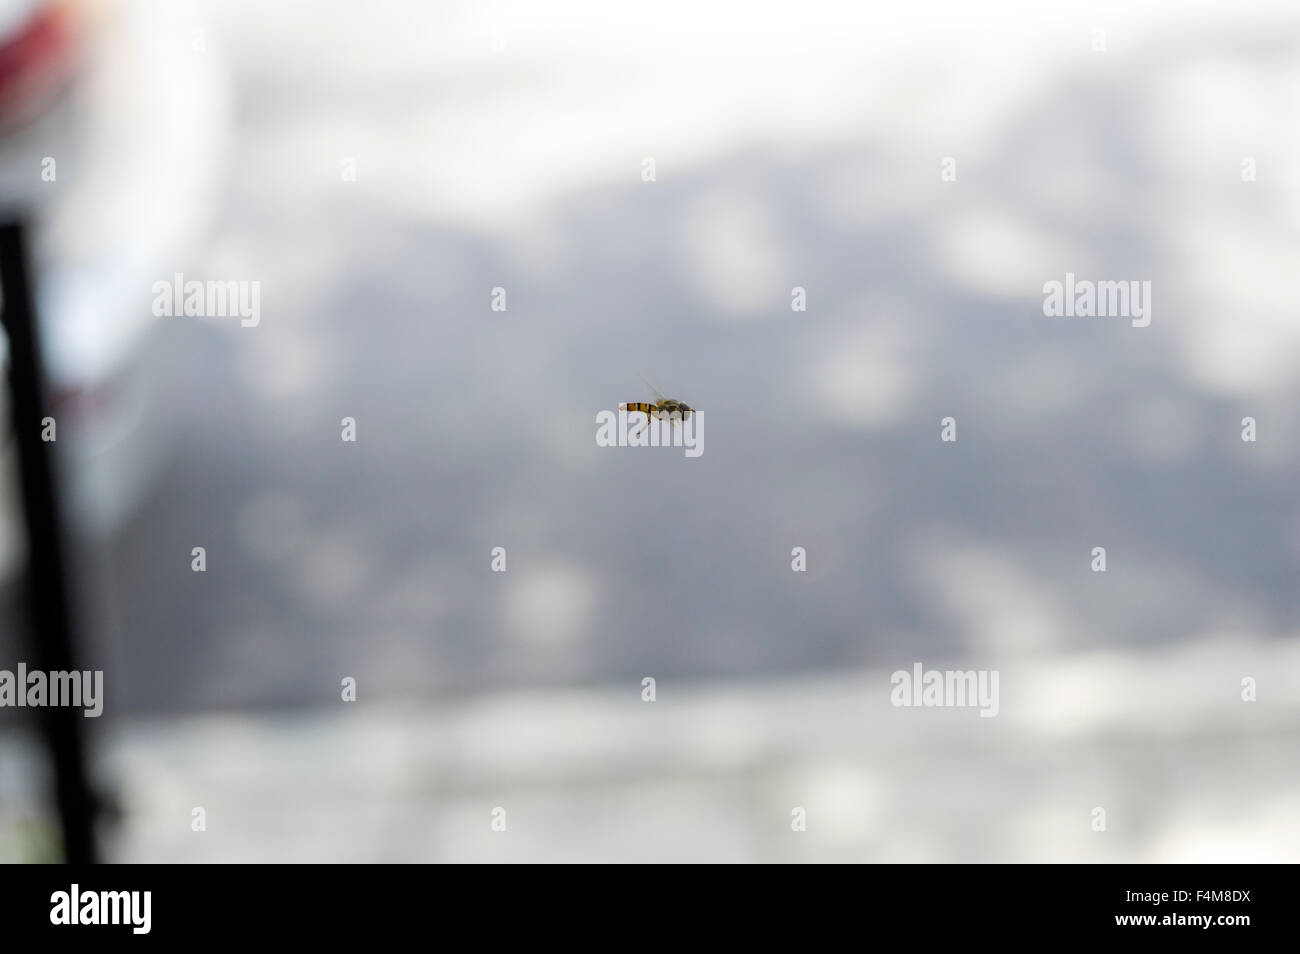 Hoverfly in mid air flight, also known as flower fly, sweat bee or syrphid fly, in the insect family Syrphidae, - Stock Image